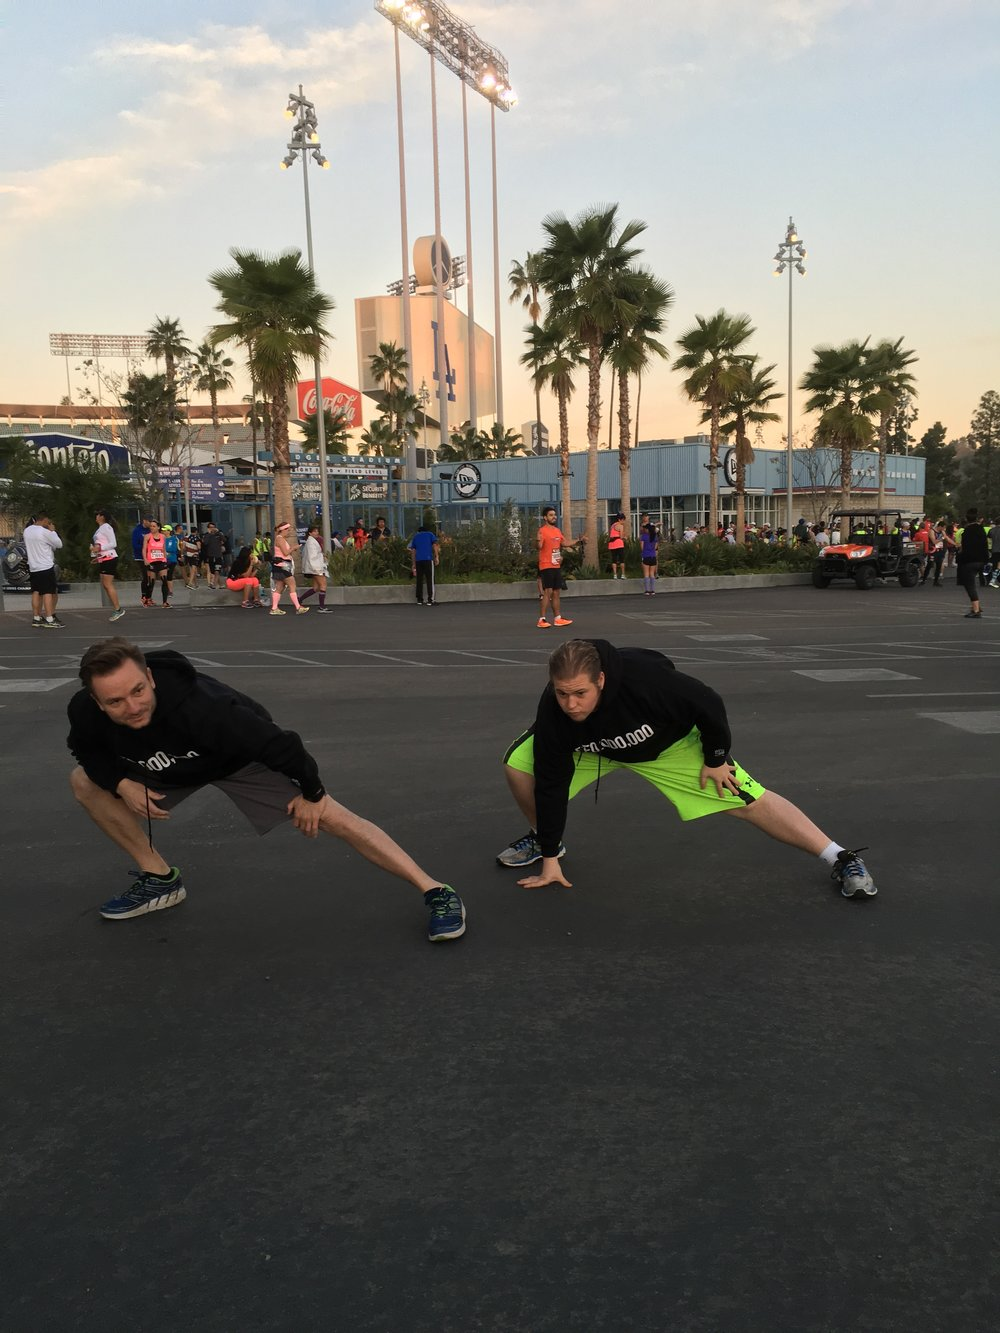 My Bestfriend Scott Cameron Challenged Me To A Marathon to lose my weight once and for all. -